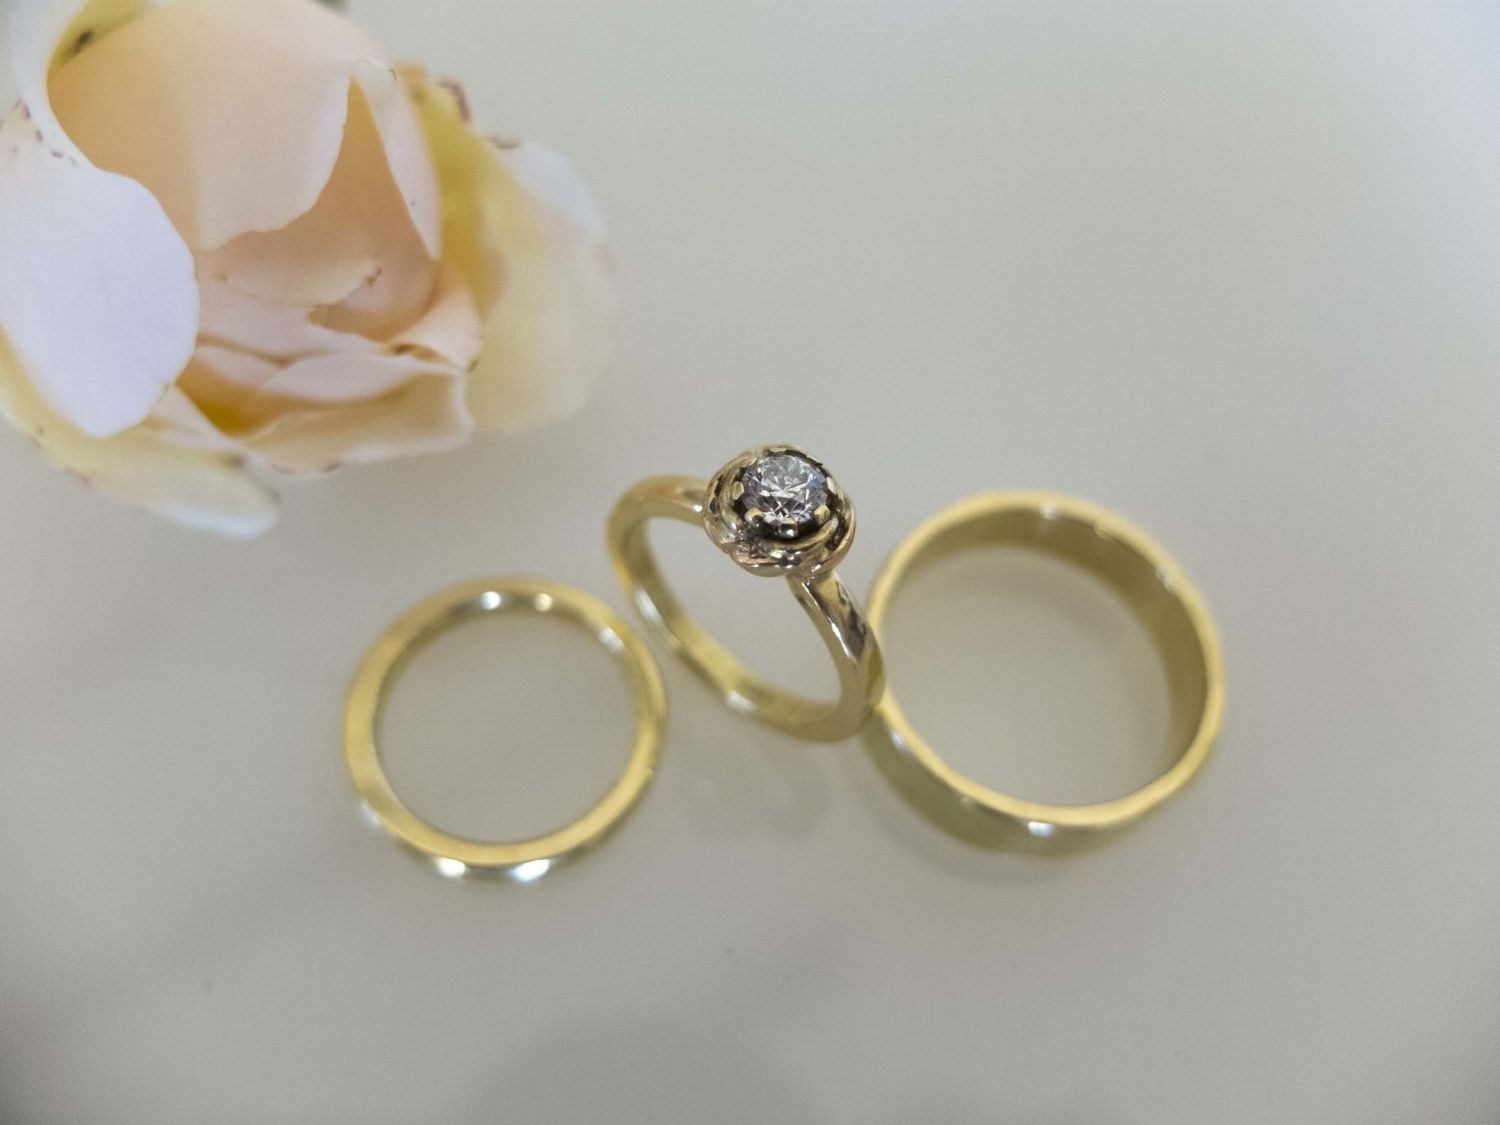 Diamond and Gold Rose Engament Ring.jpg